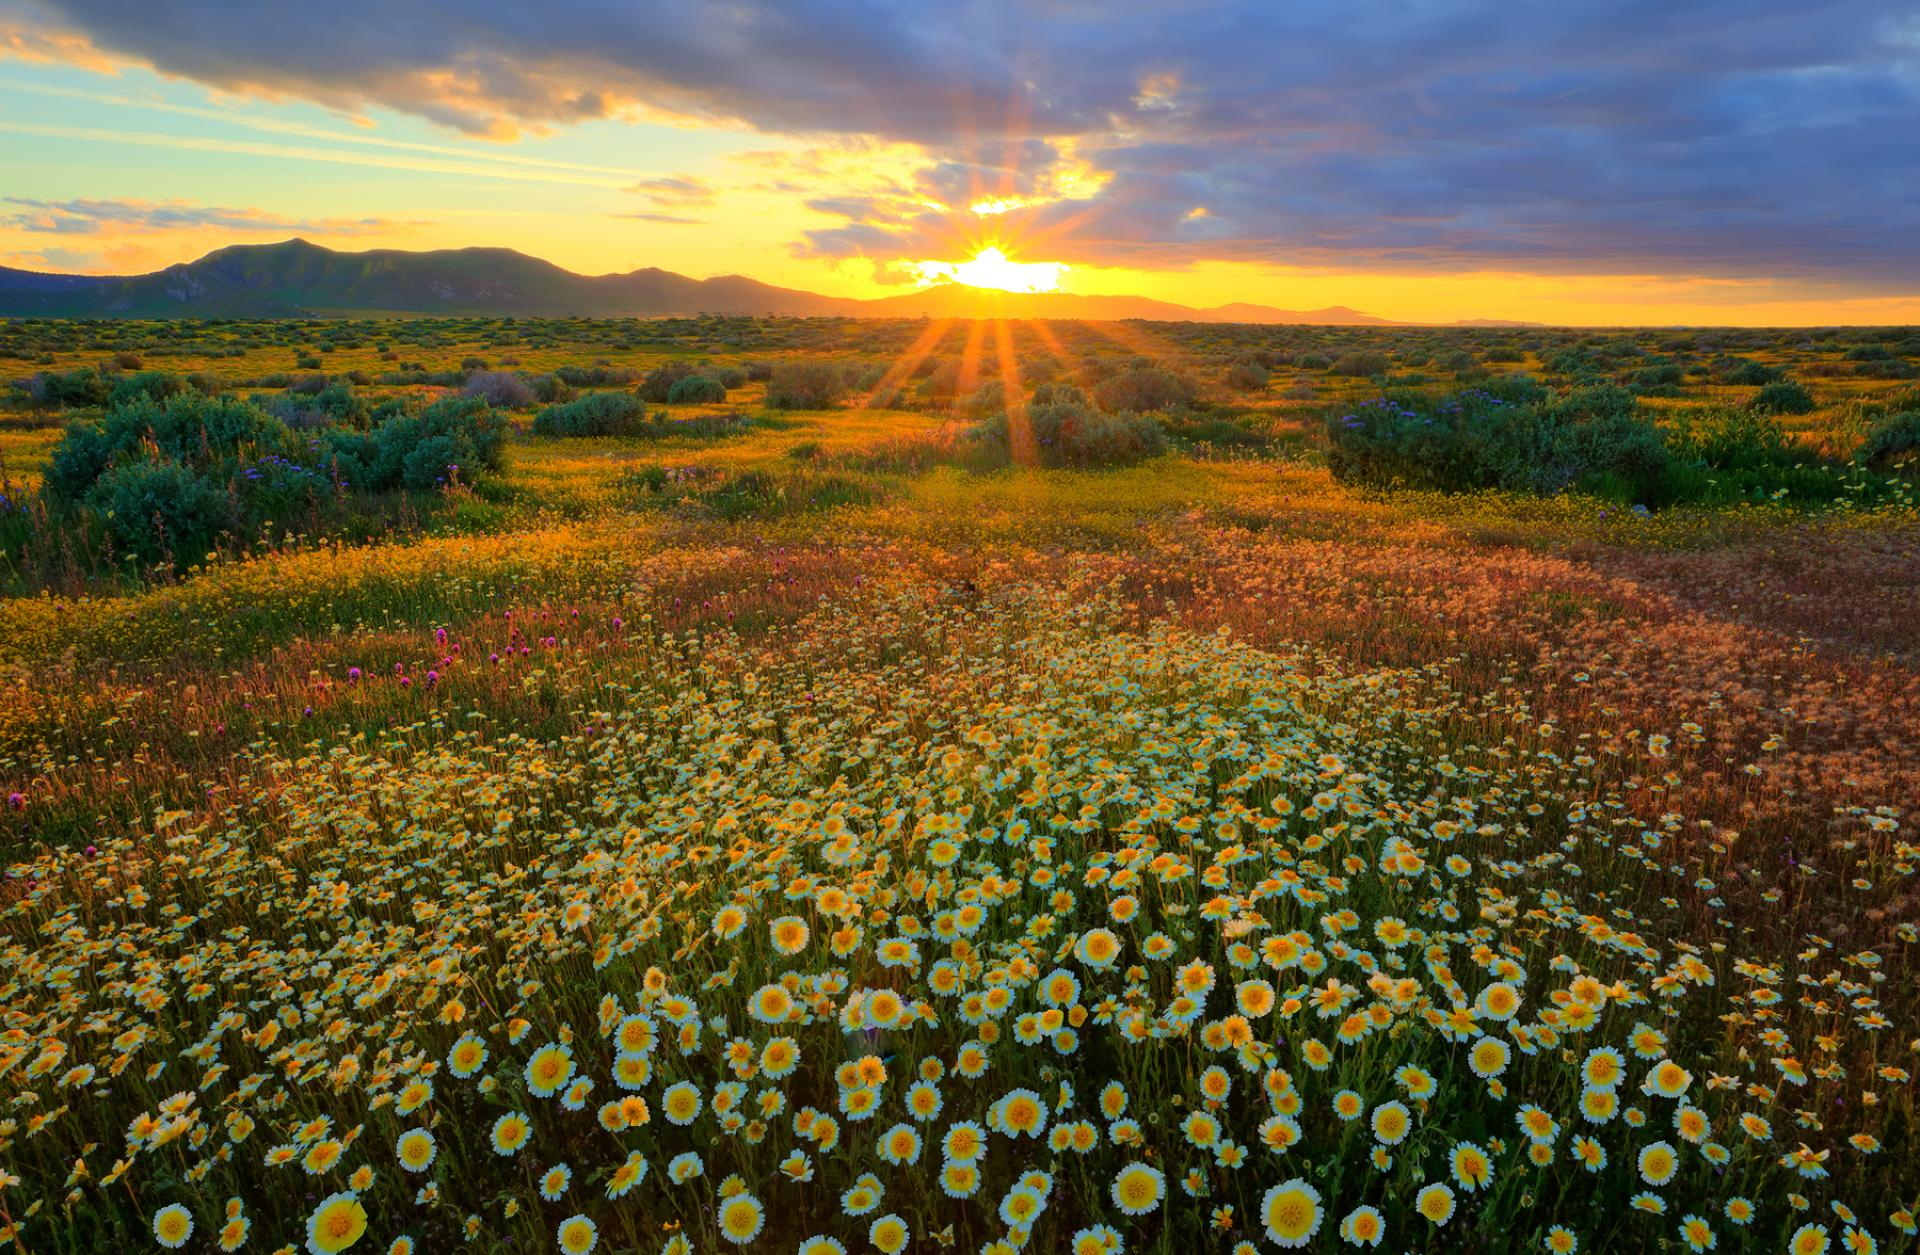 Wildflowers in Carrizo Plain National Monument, California.